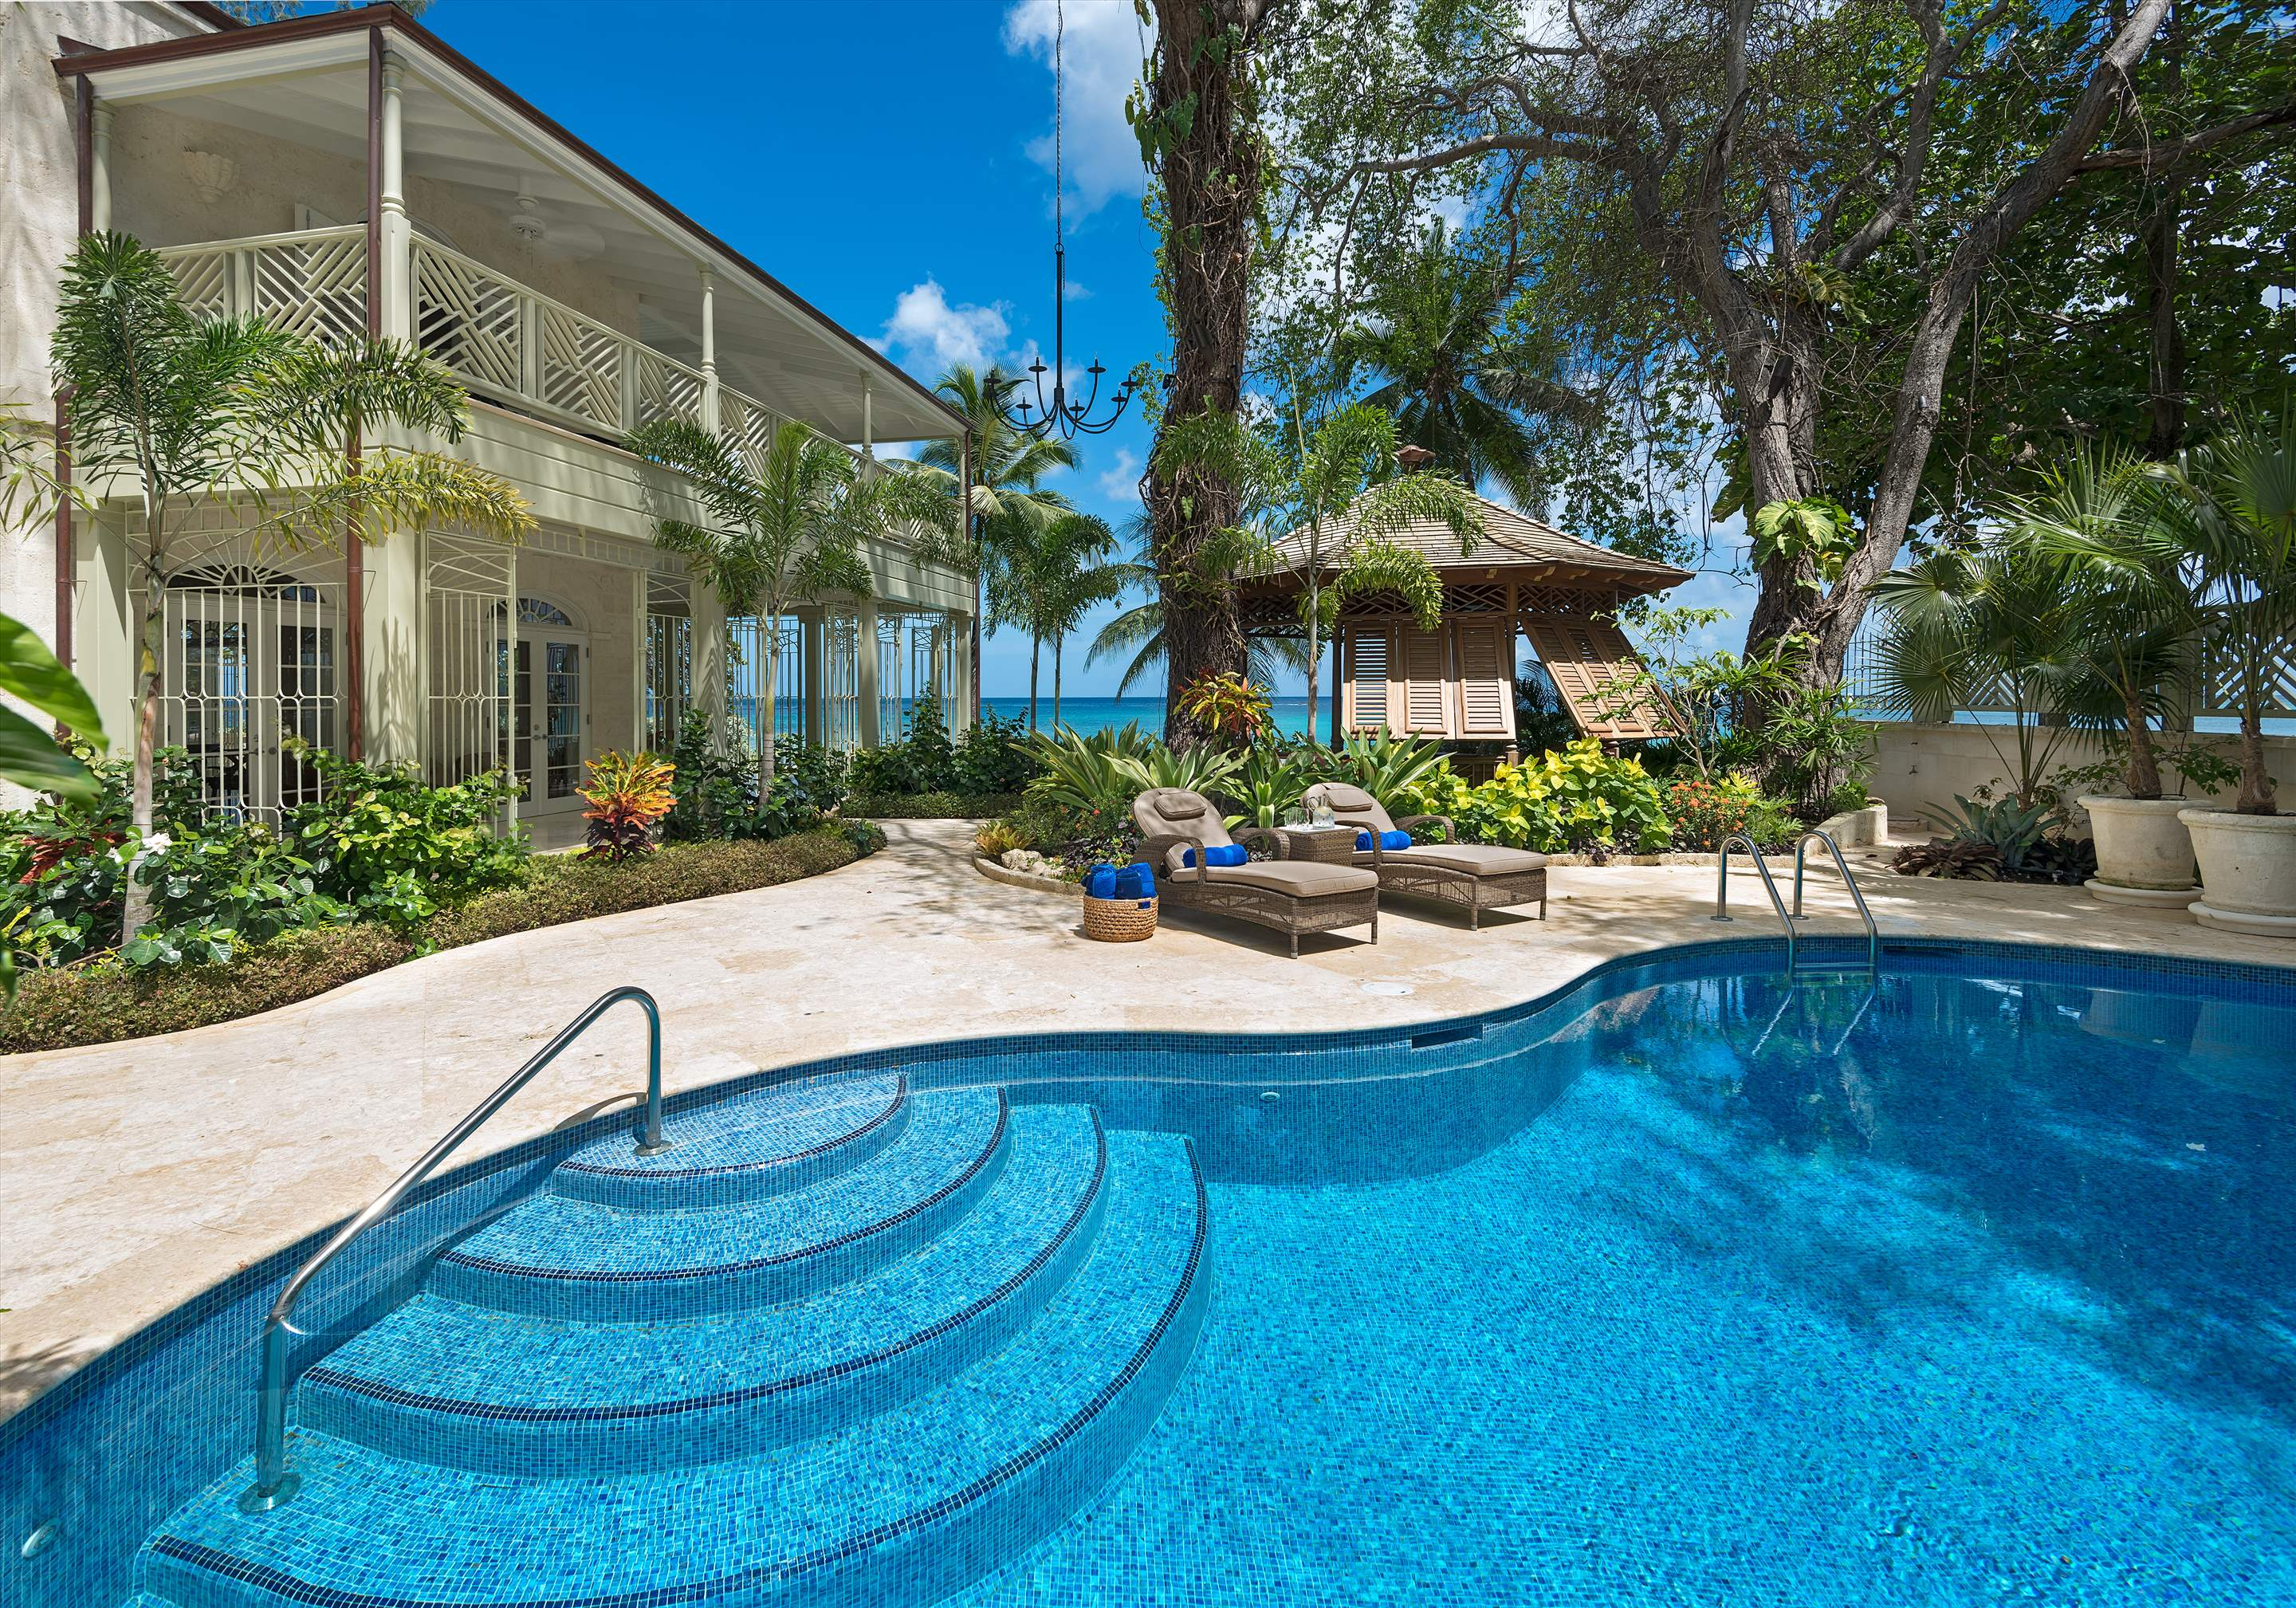 Hemingway House, St Peter, 4 bedroom villa in St. James & West Coast, Barbados Photo #1